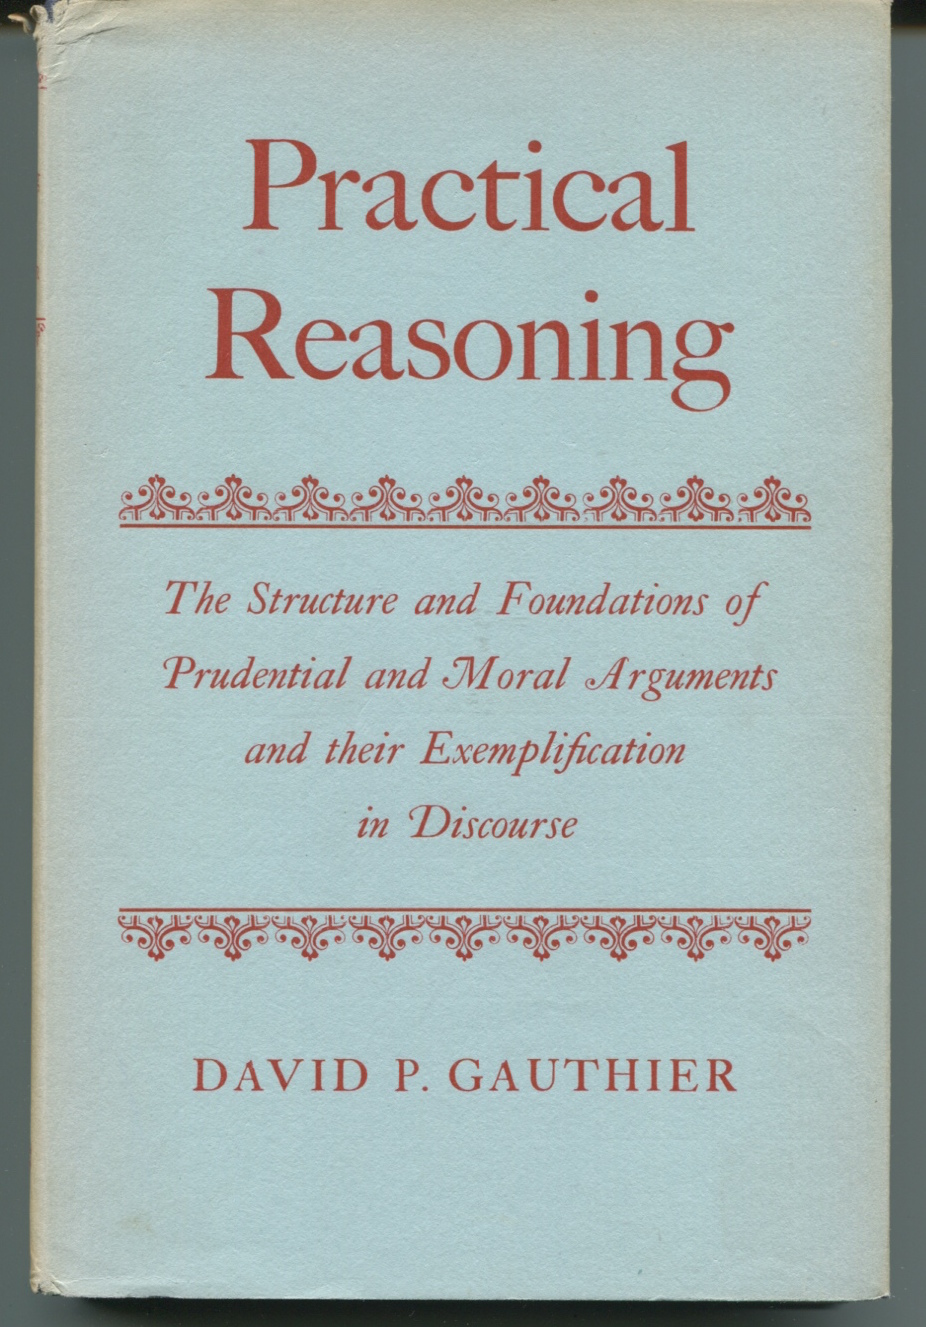 Practical Reasoning. The Structure and Foundations of Prudential and Moral Arguments and their Exemplification in Discourse.